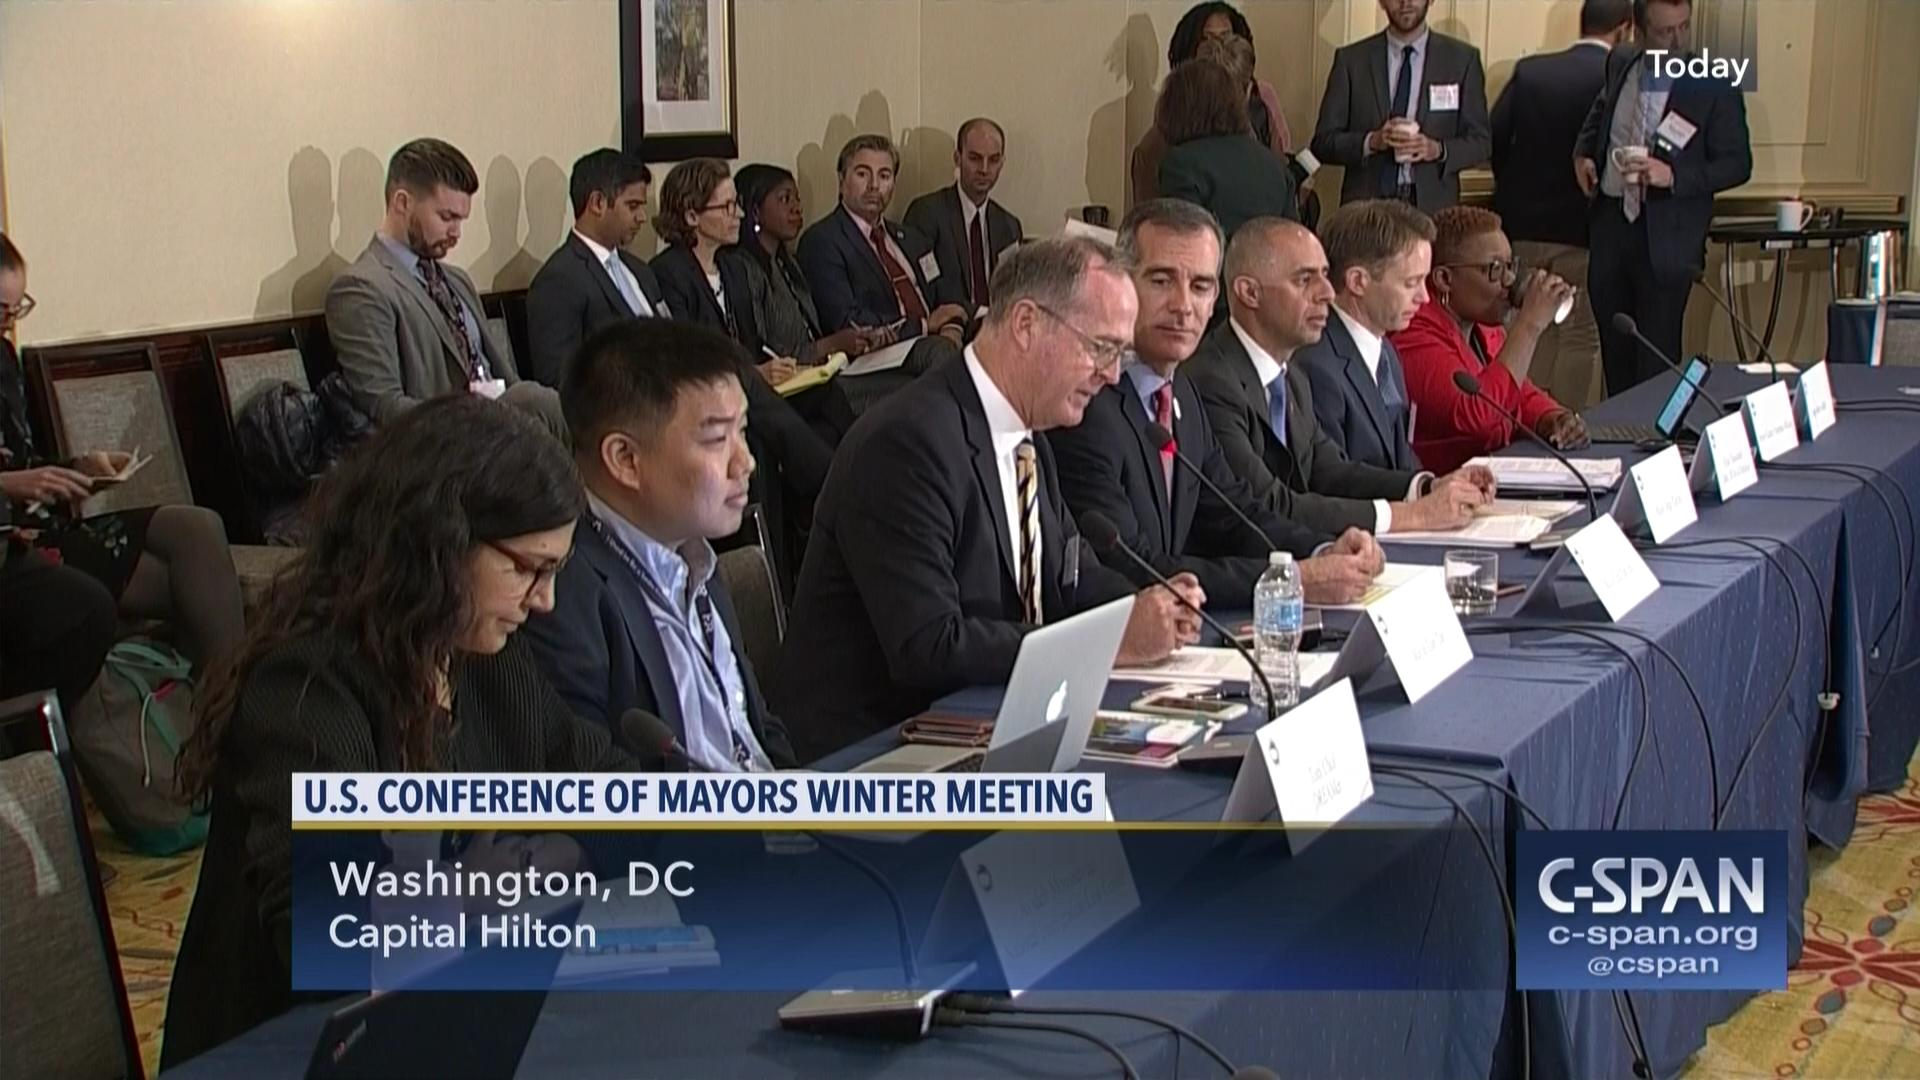 U.S. Conference of Mayors Winter Meeting, Immigration